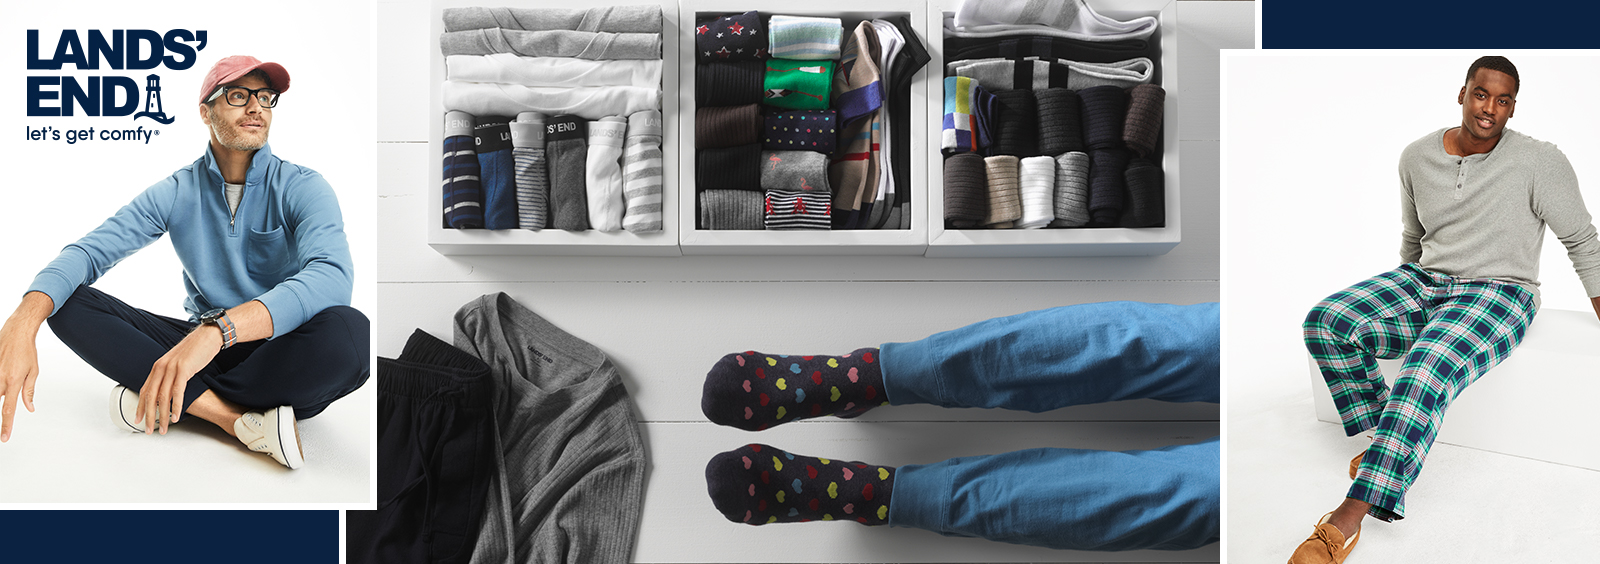 How to Dress Up Men's Loungewear for Working from Home